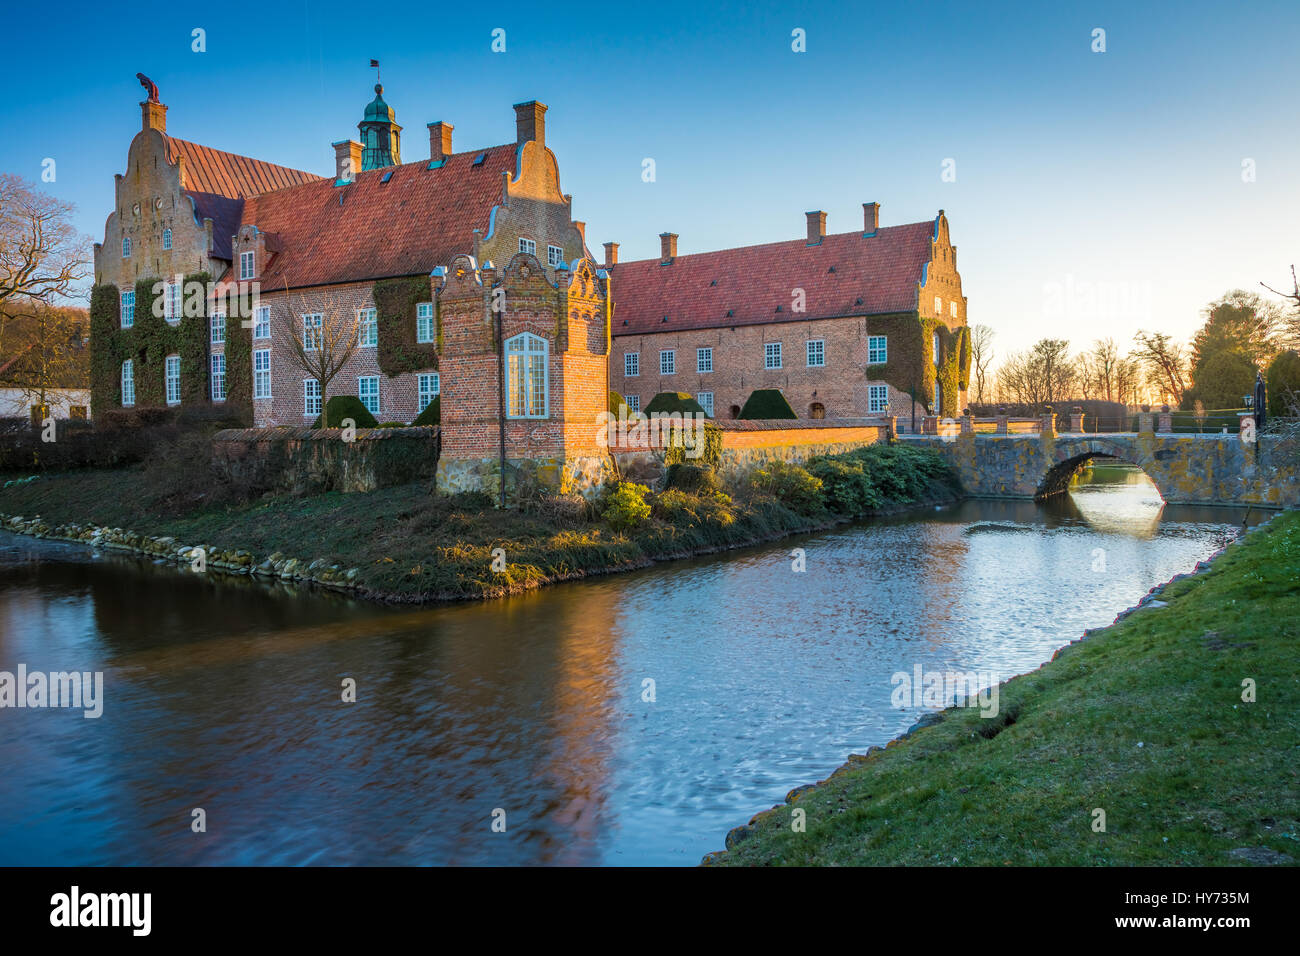 Trolle-Ljungby Castle (Swedish: Trolle-Ljungby slott) is a castle in Kristianstad Municipality, Scania, in southern - Stock Image